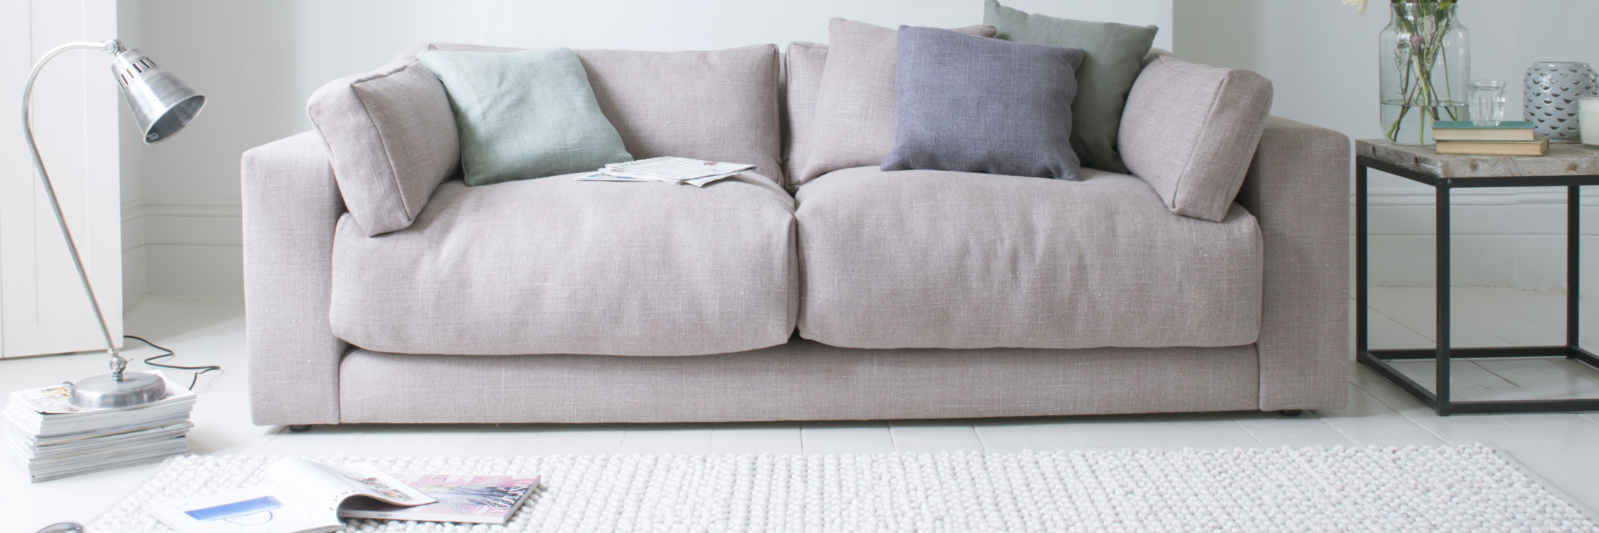 Atticus comfy British-made sofa with removable arms